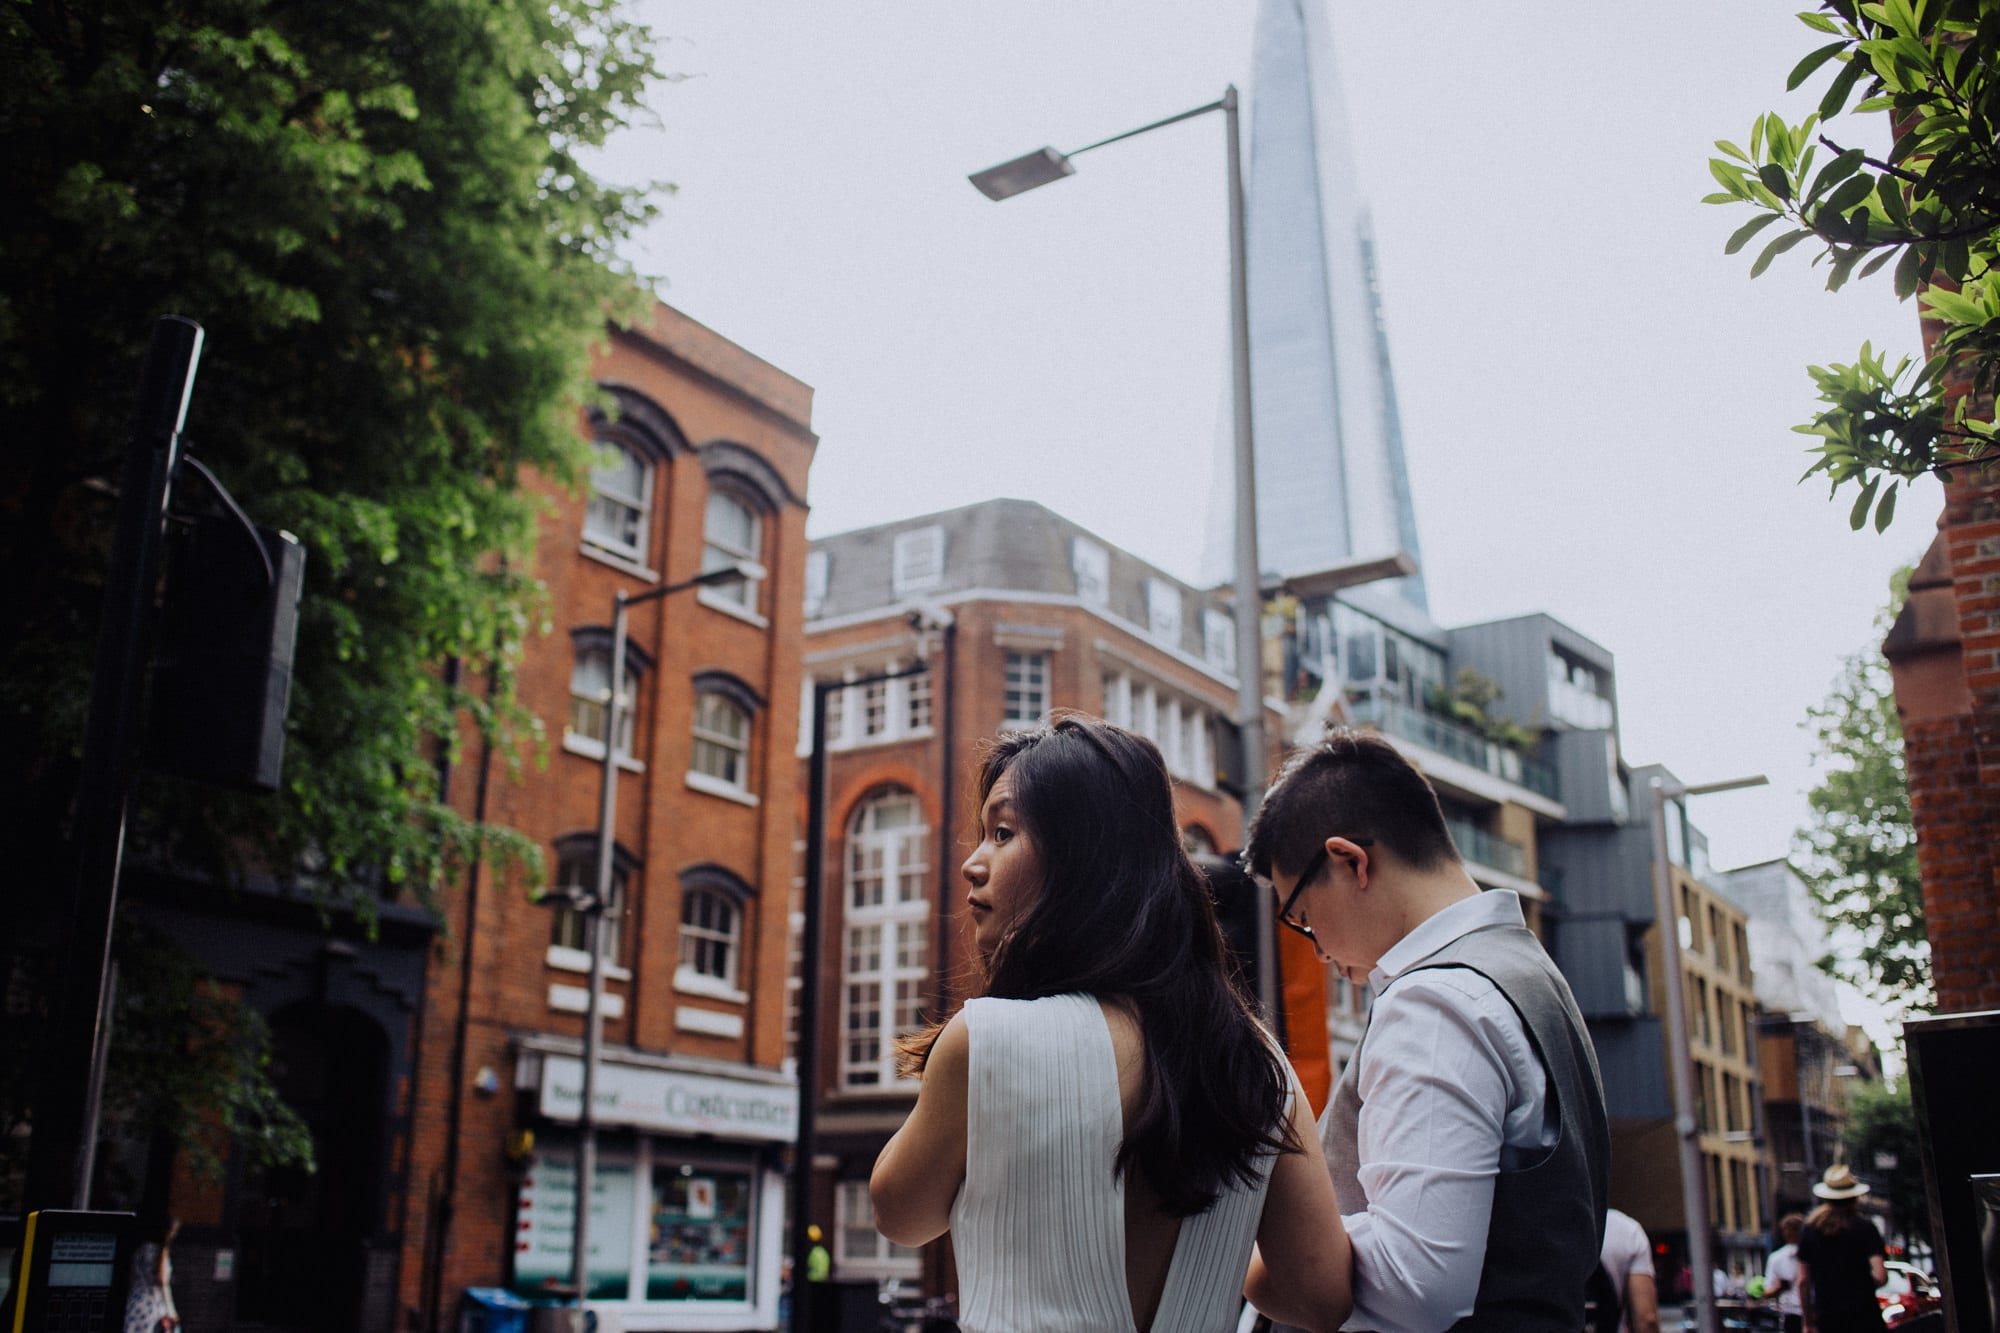 068_Emma&Kervin_CoupleSession_London_ManonPauffinPhotography__MG_1041_LOres